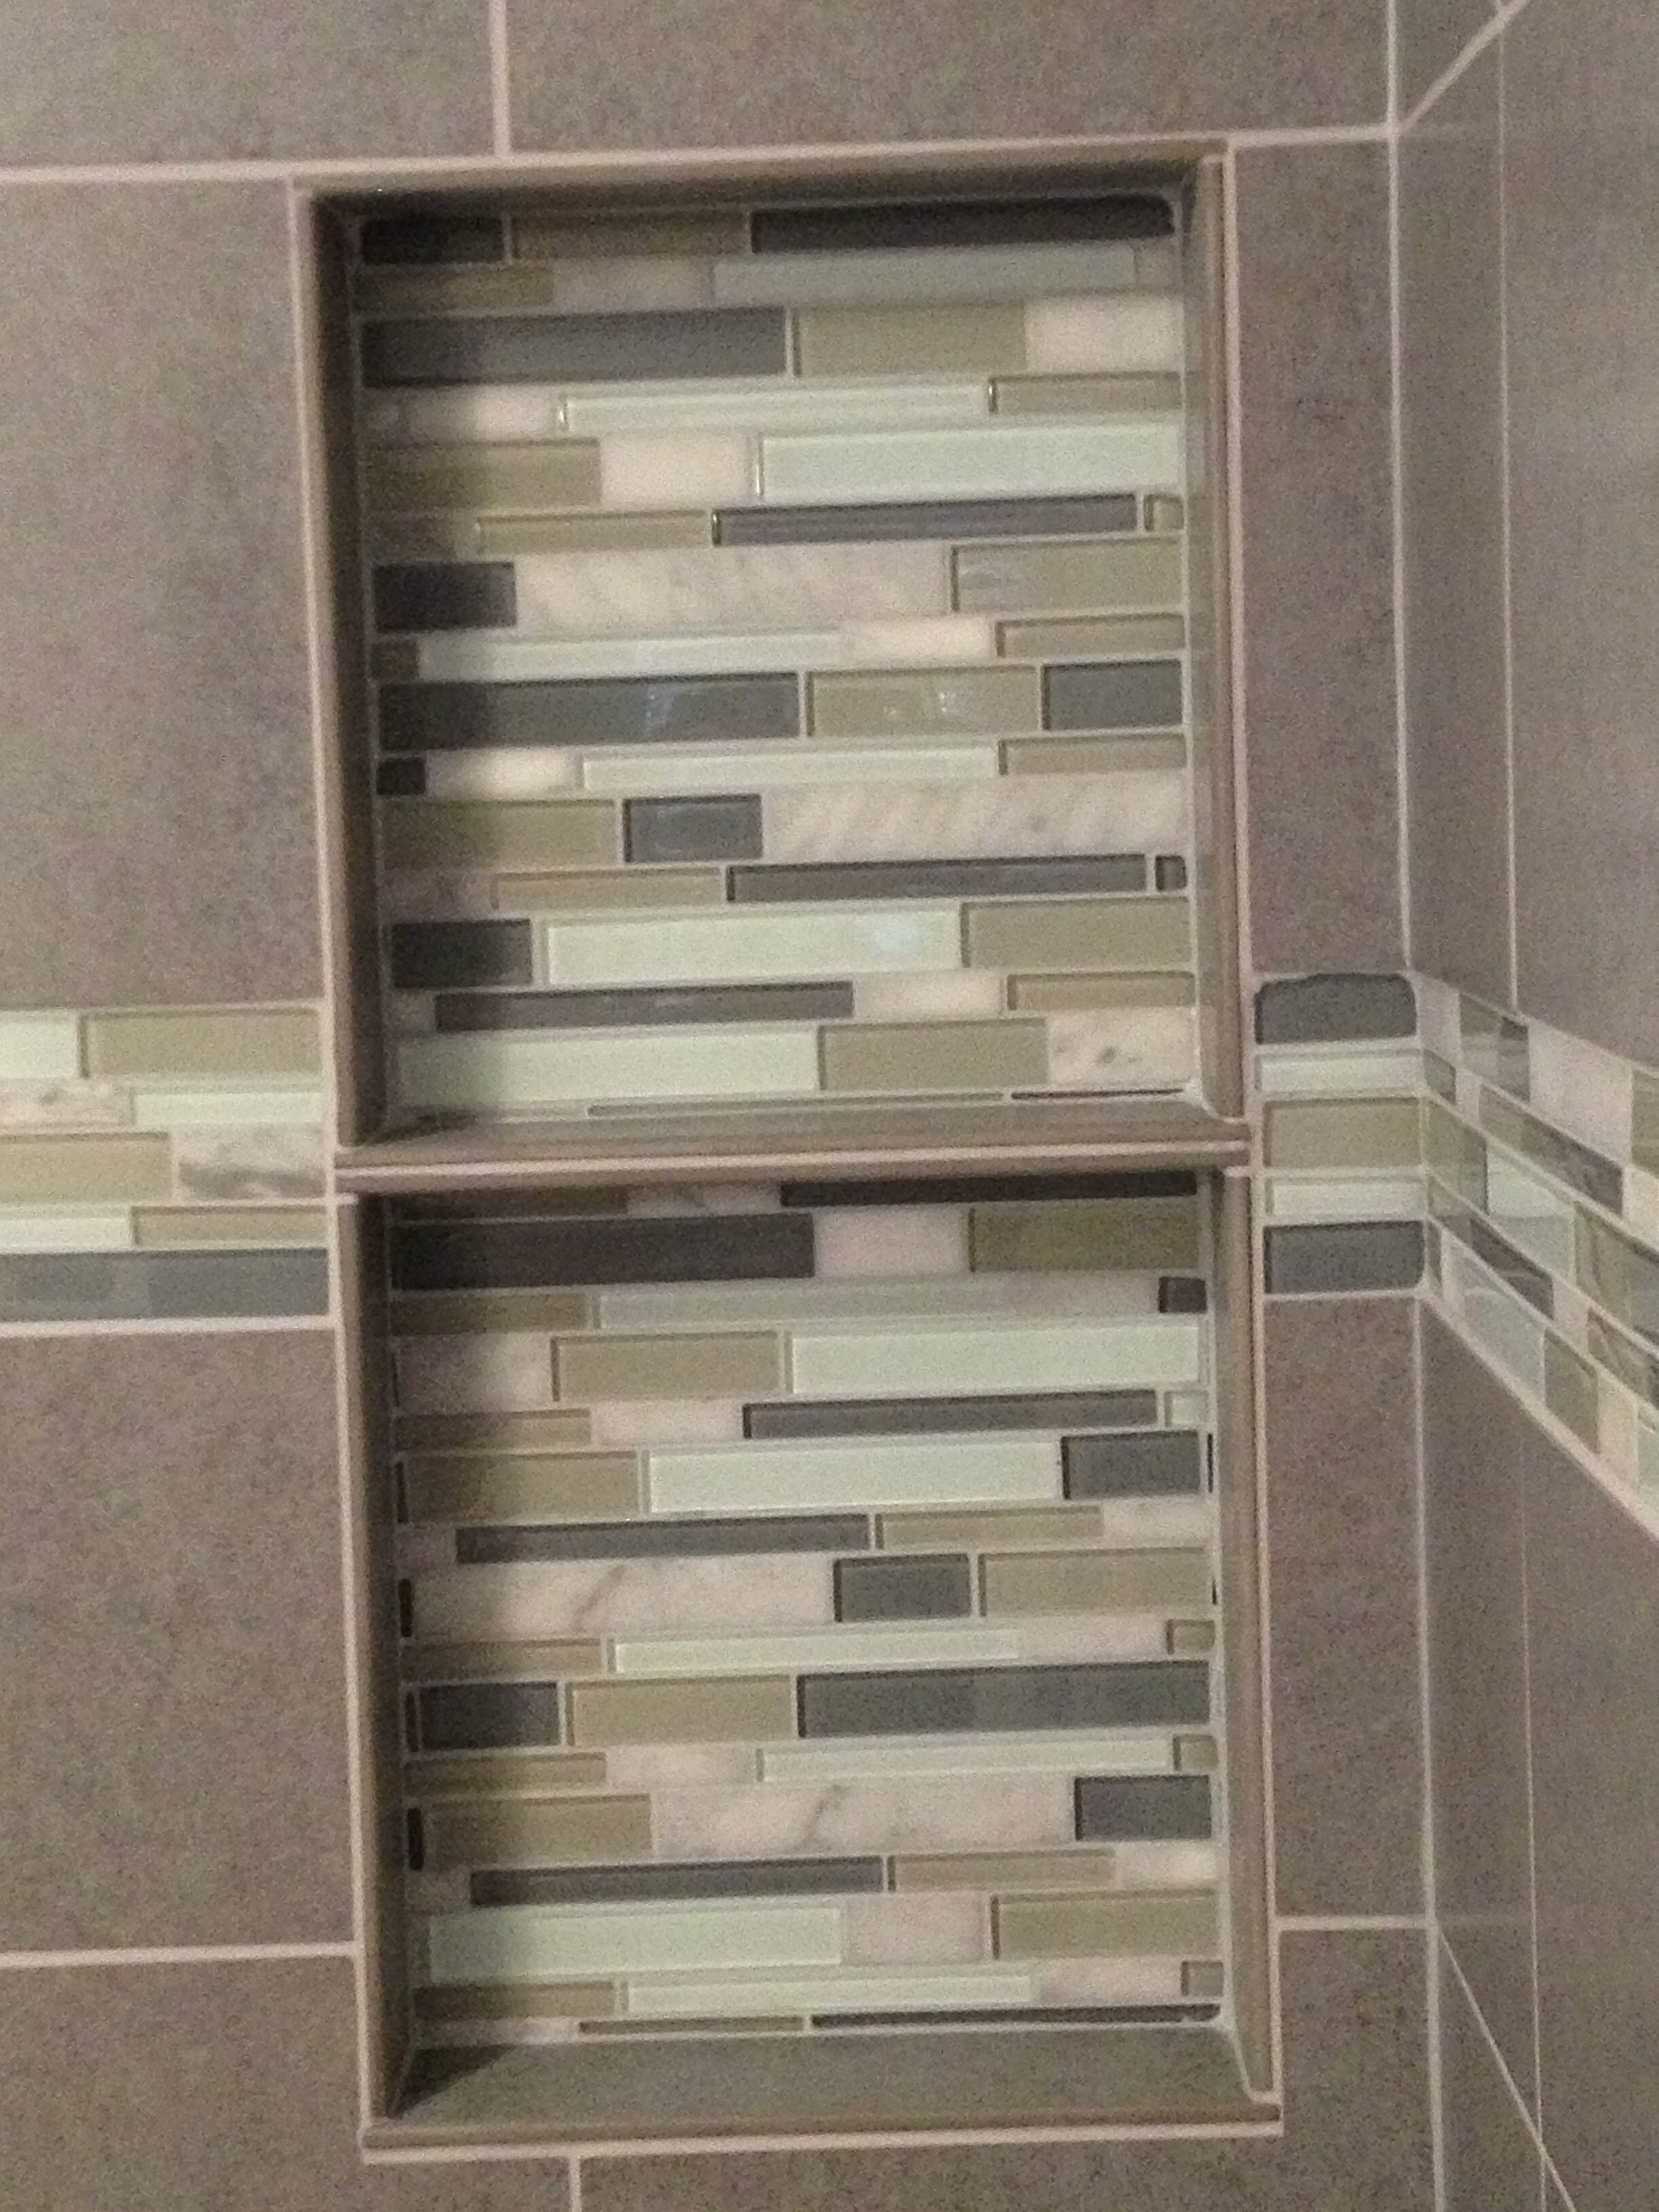 double shelf, recessed shelf, glass tile, decorative border